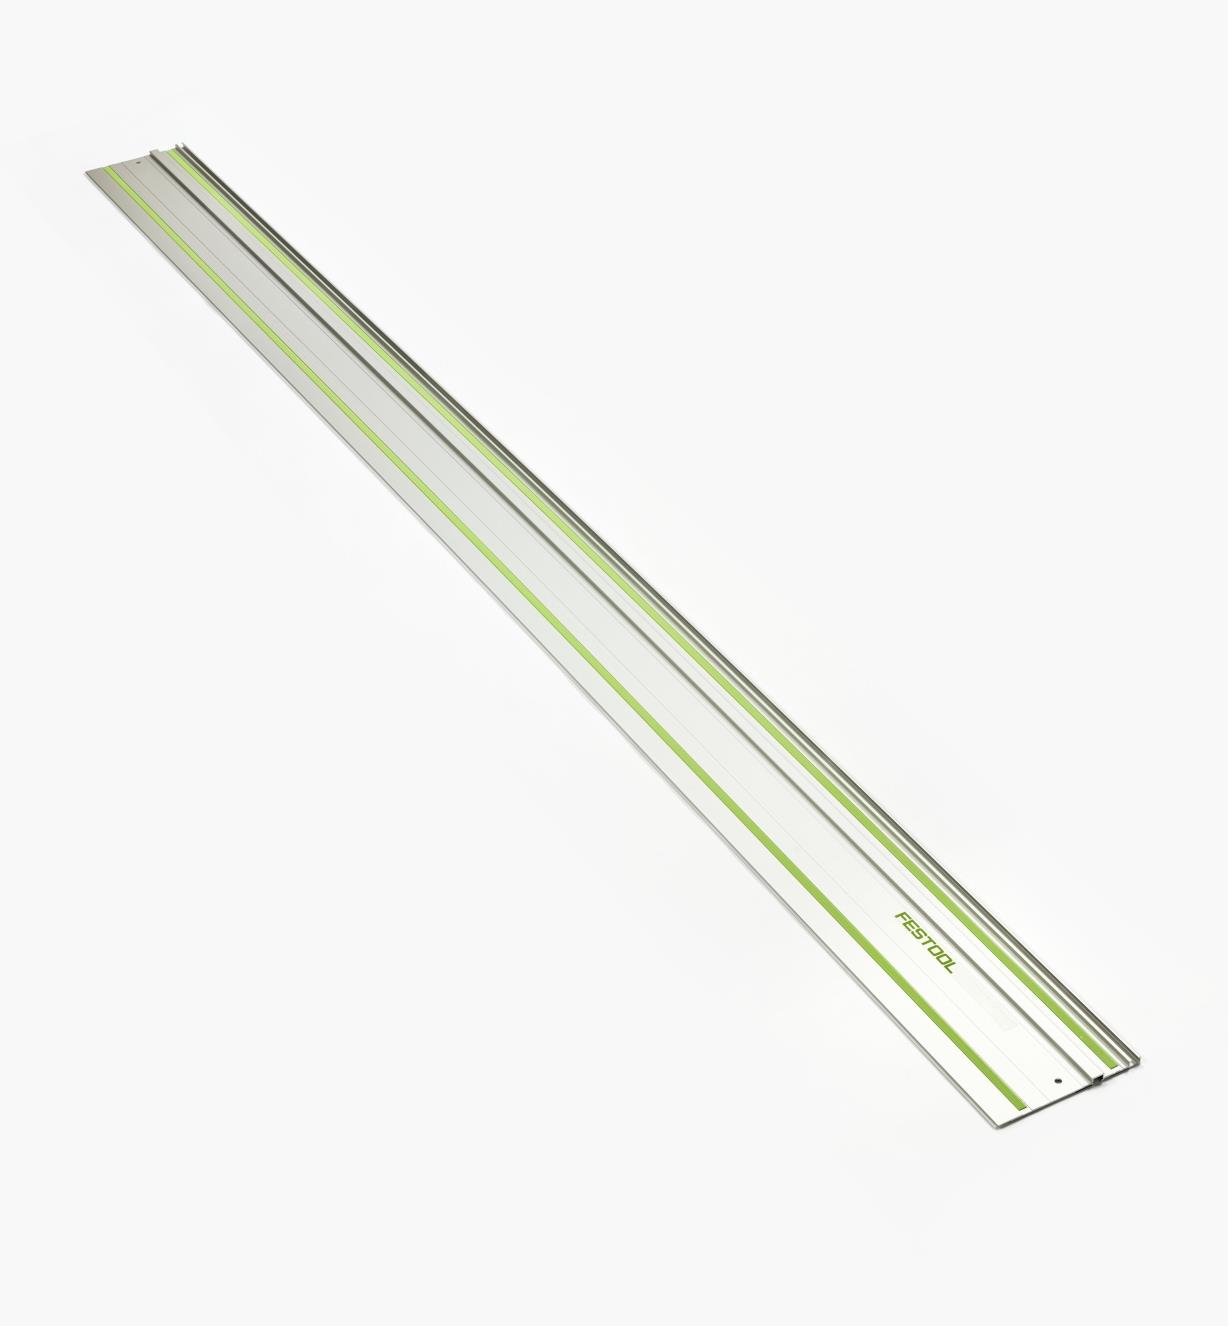 ZA491501 - Guide Rail FS 3000/2